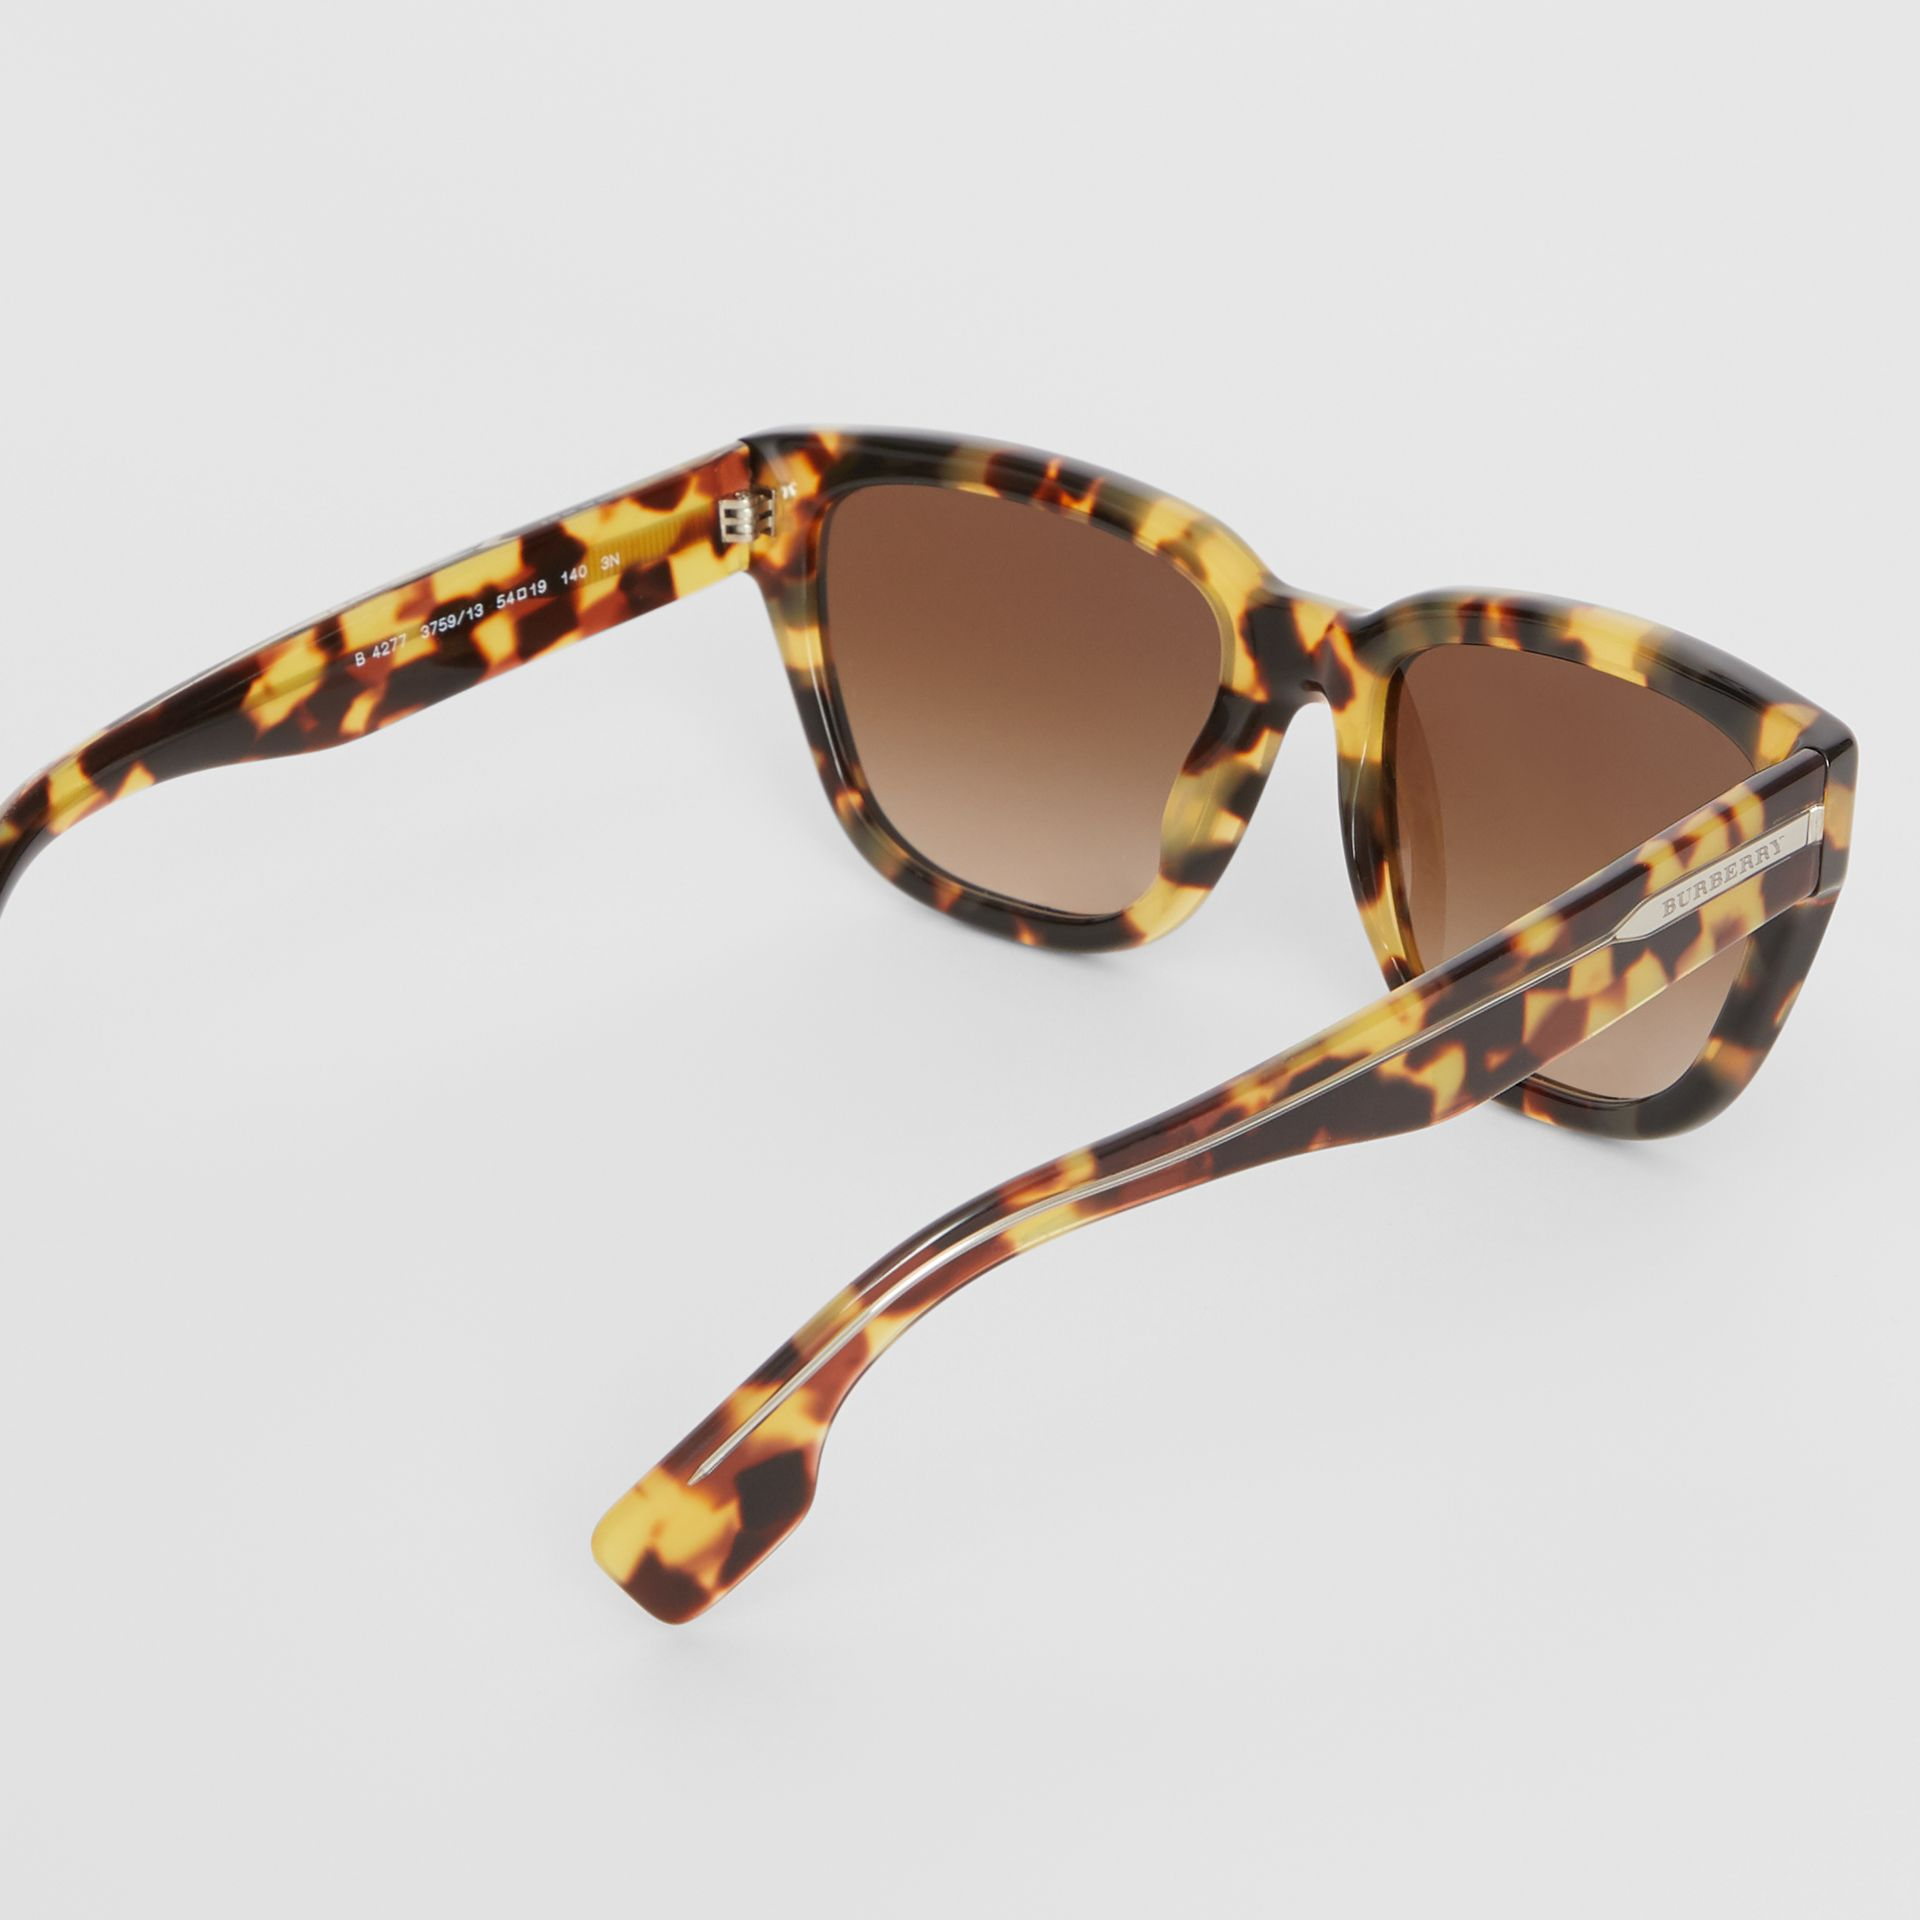 Square Frame Sunglasses in Tortoise Shell - Women | Burberry United States - gallery image 4